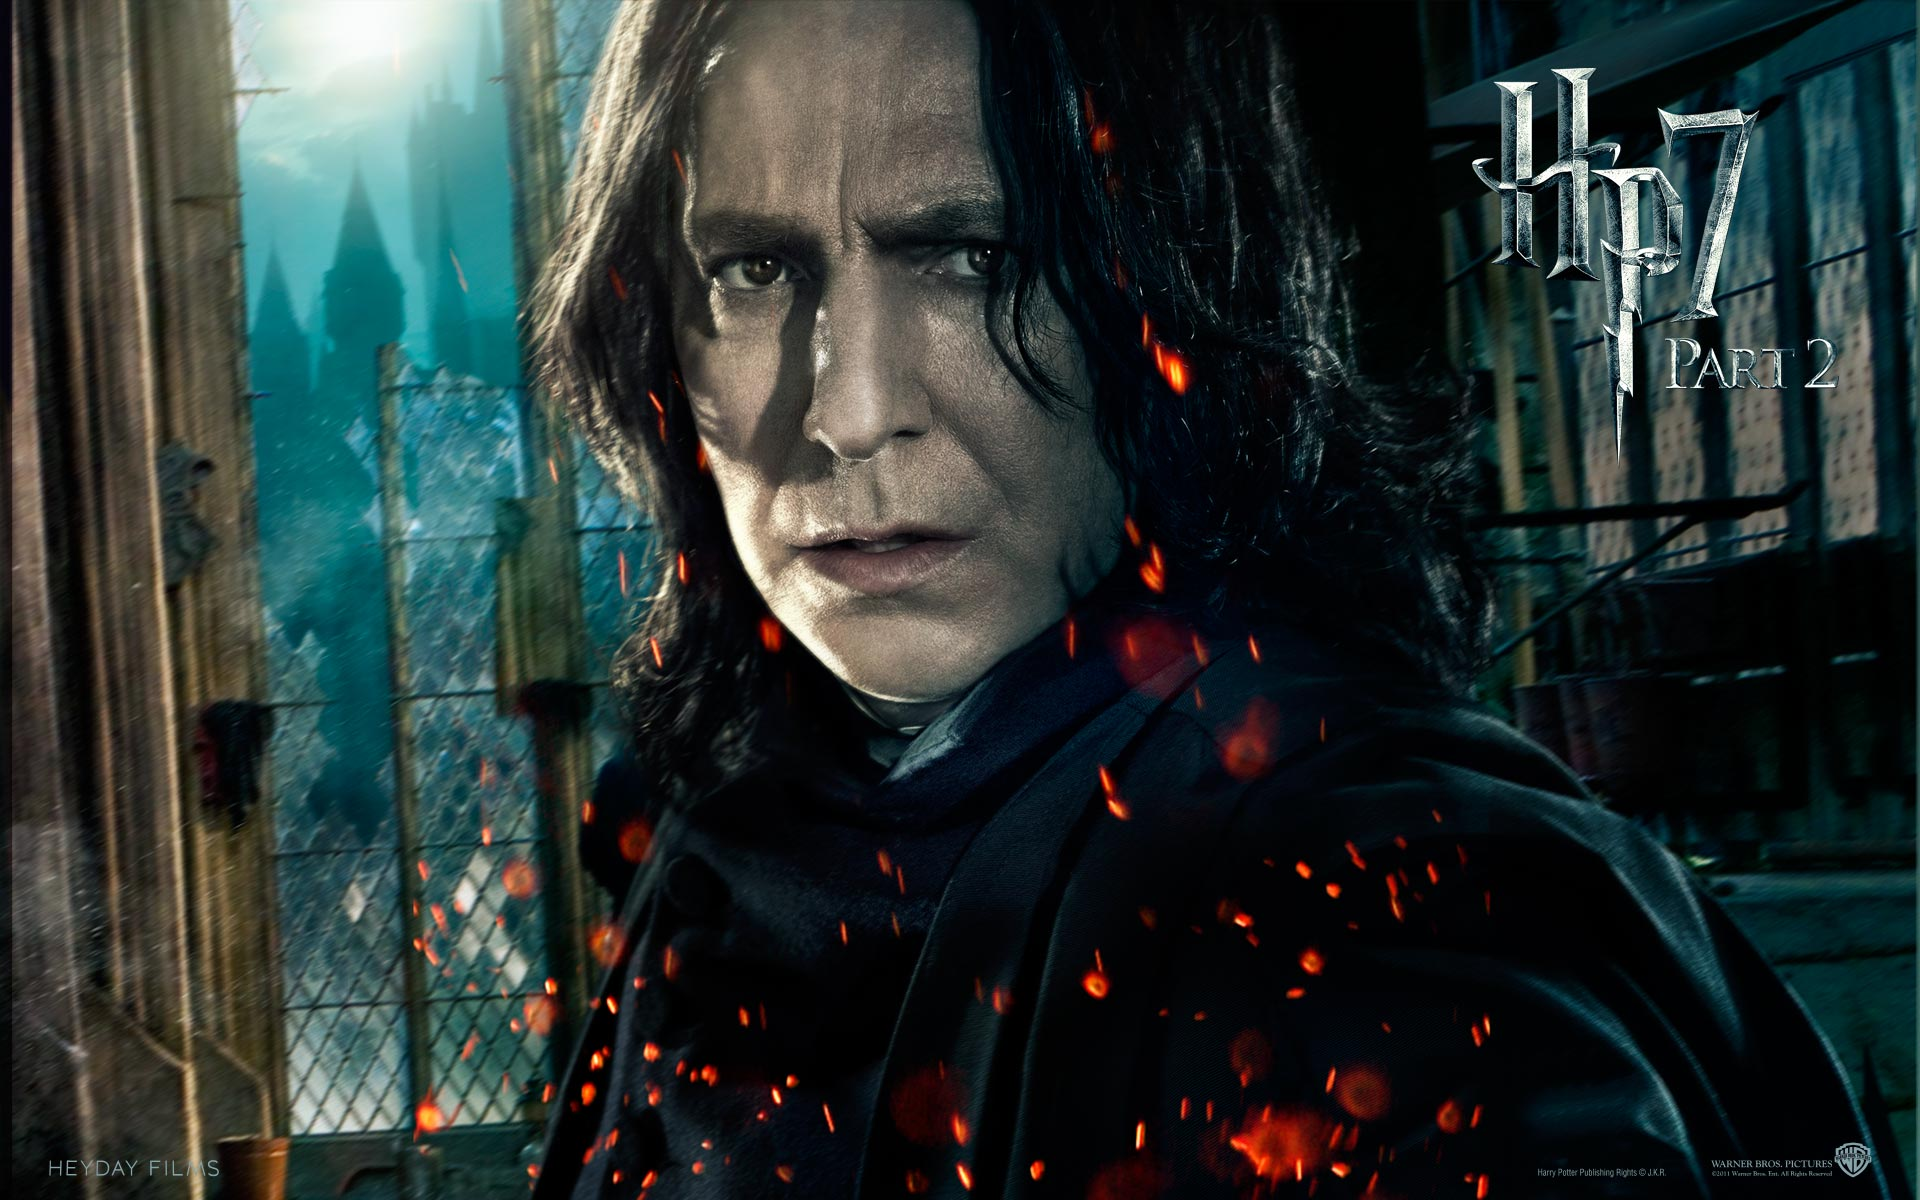 100 Quality Hd Creative Harry Potter And The Deathly Hallows Pictures